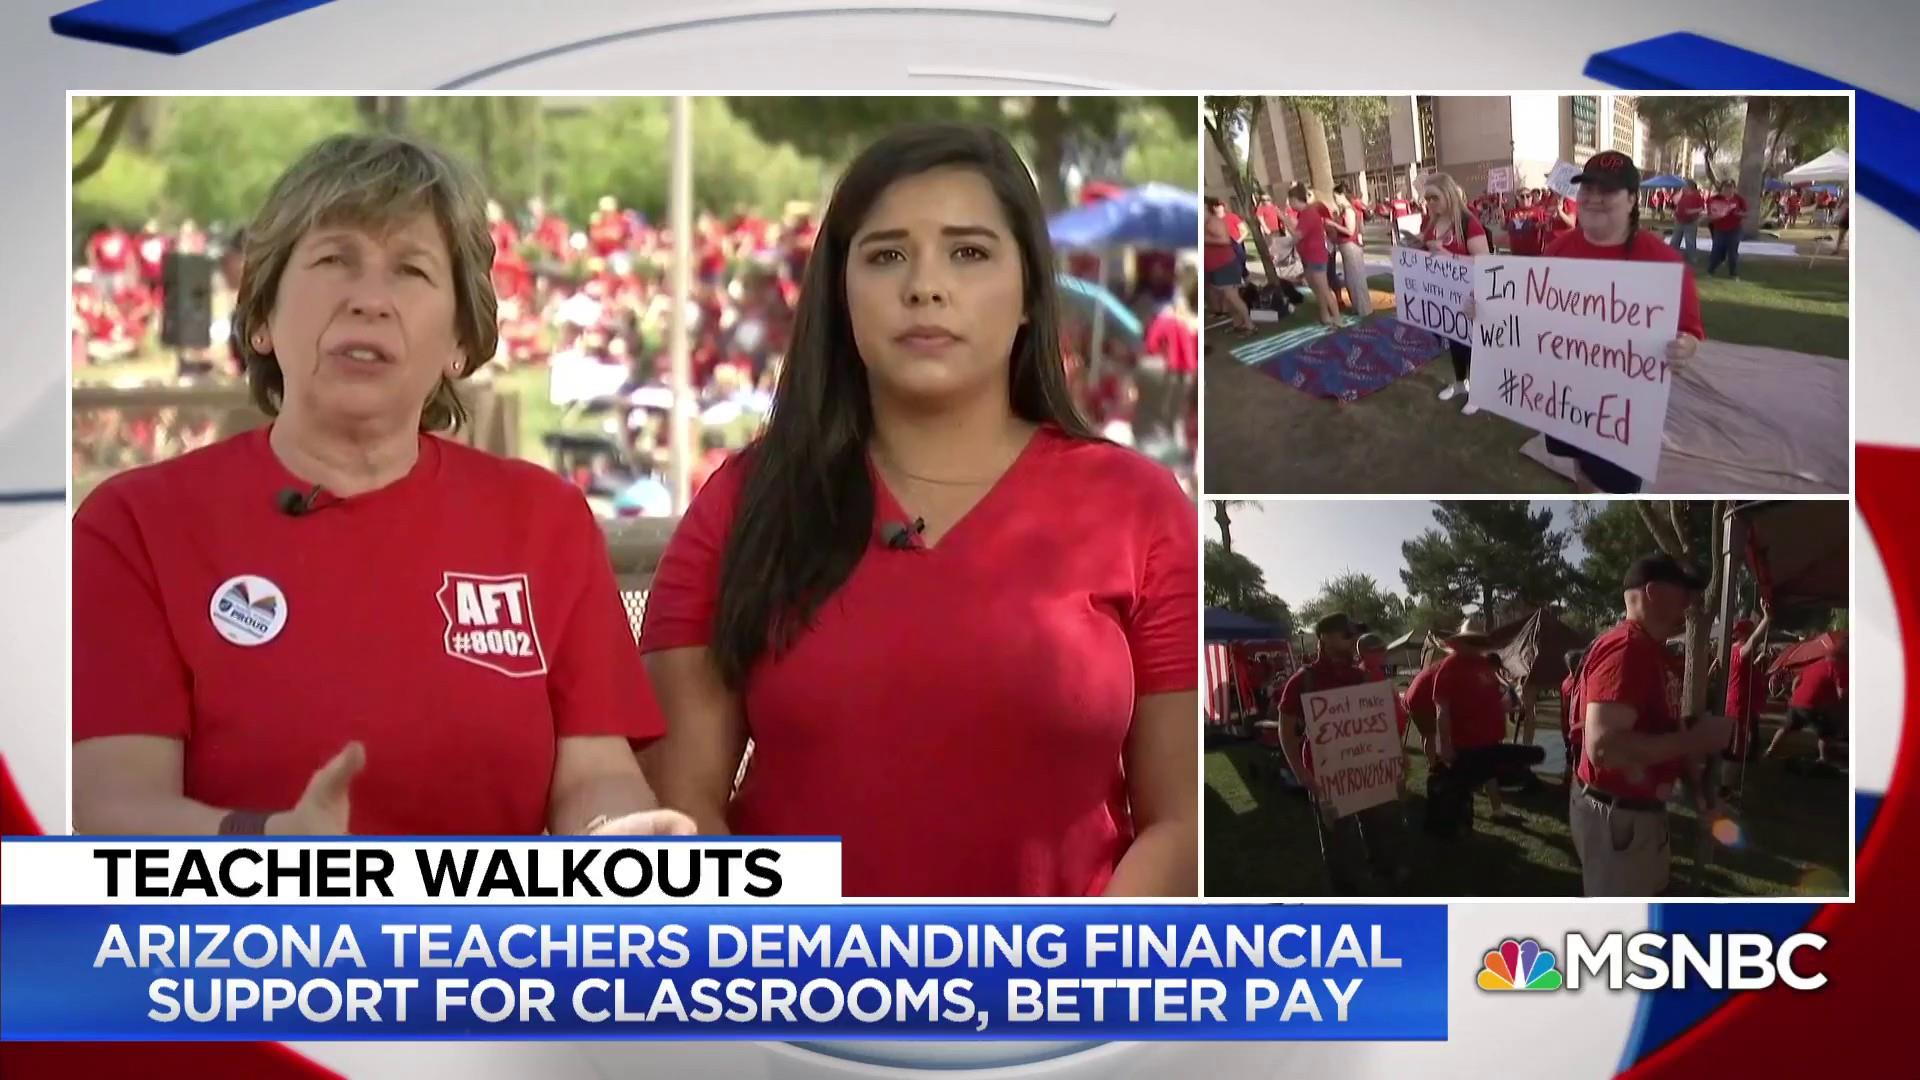 AZ Teacher explains why the walkout is needed